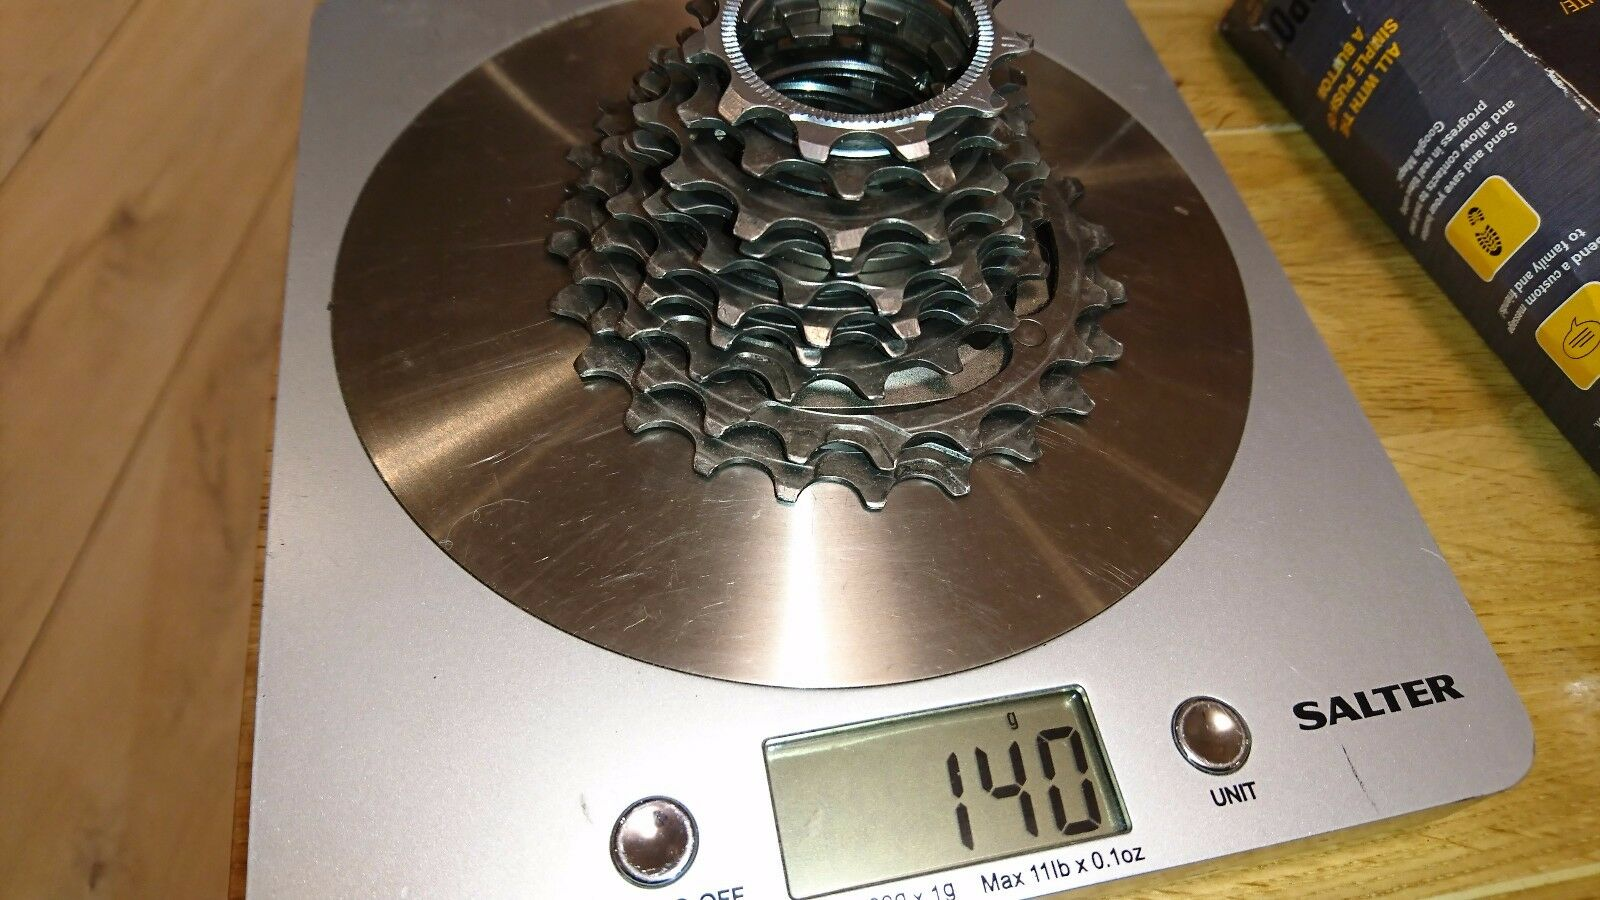 Campagnolo Record 140g Road Bike nearly full Titanium Cassette 10 Speed 11-23